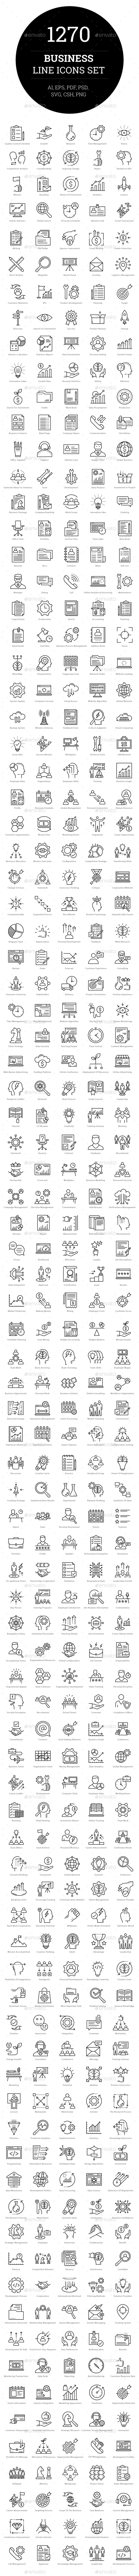 GraphicRiver 1270 Business Line Icons 21107432